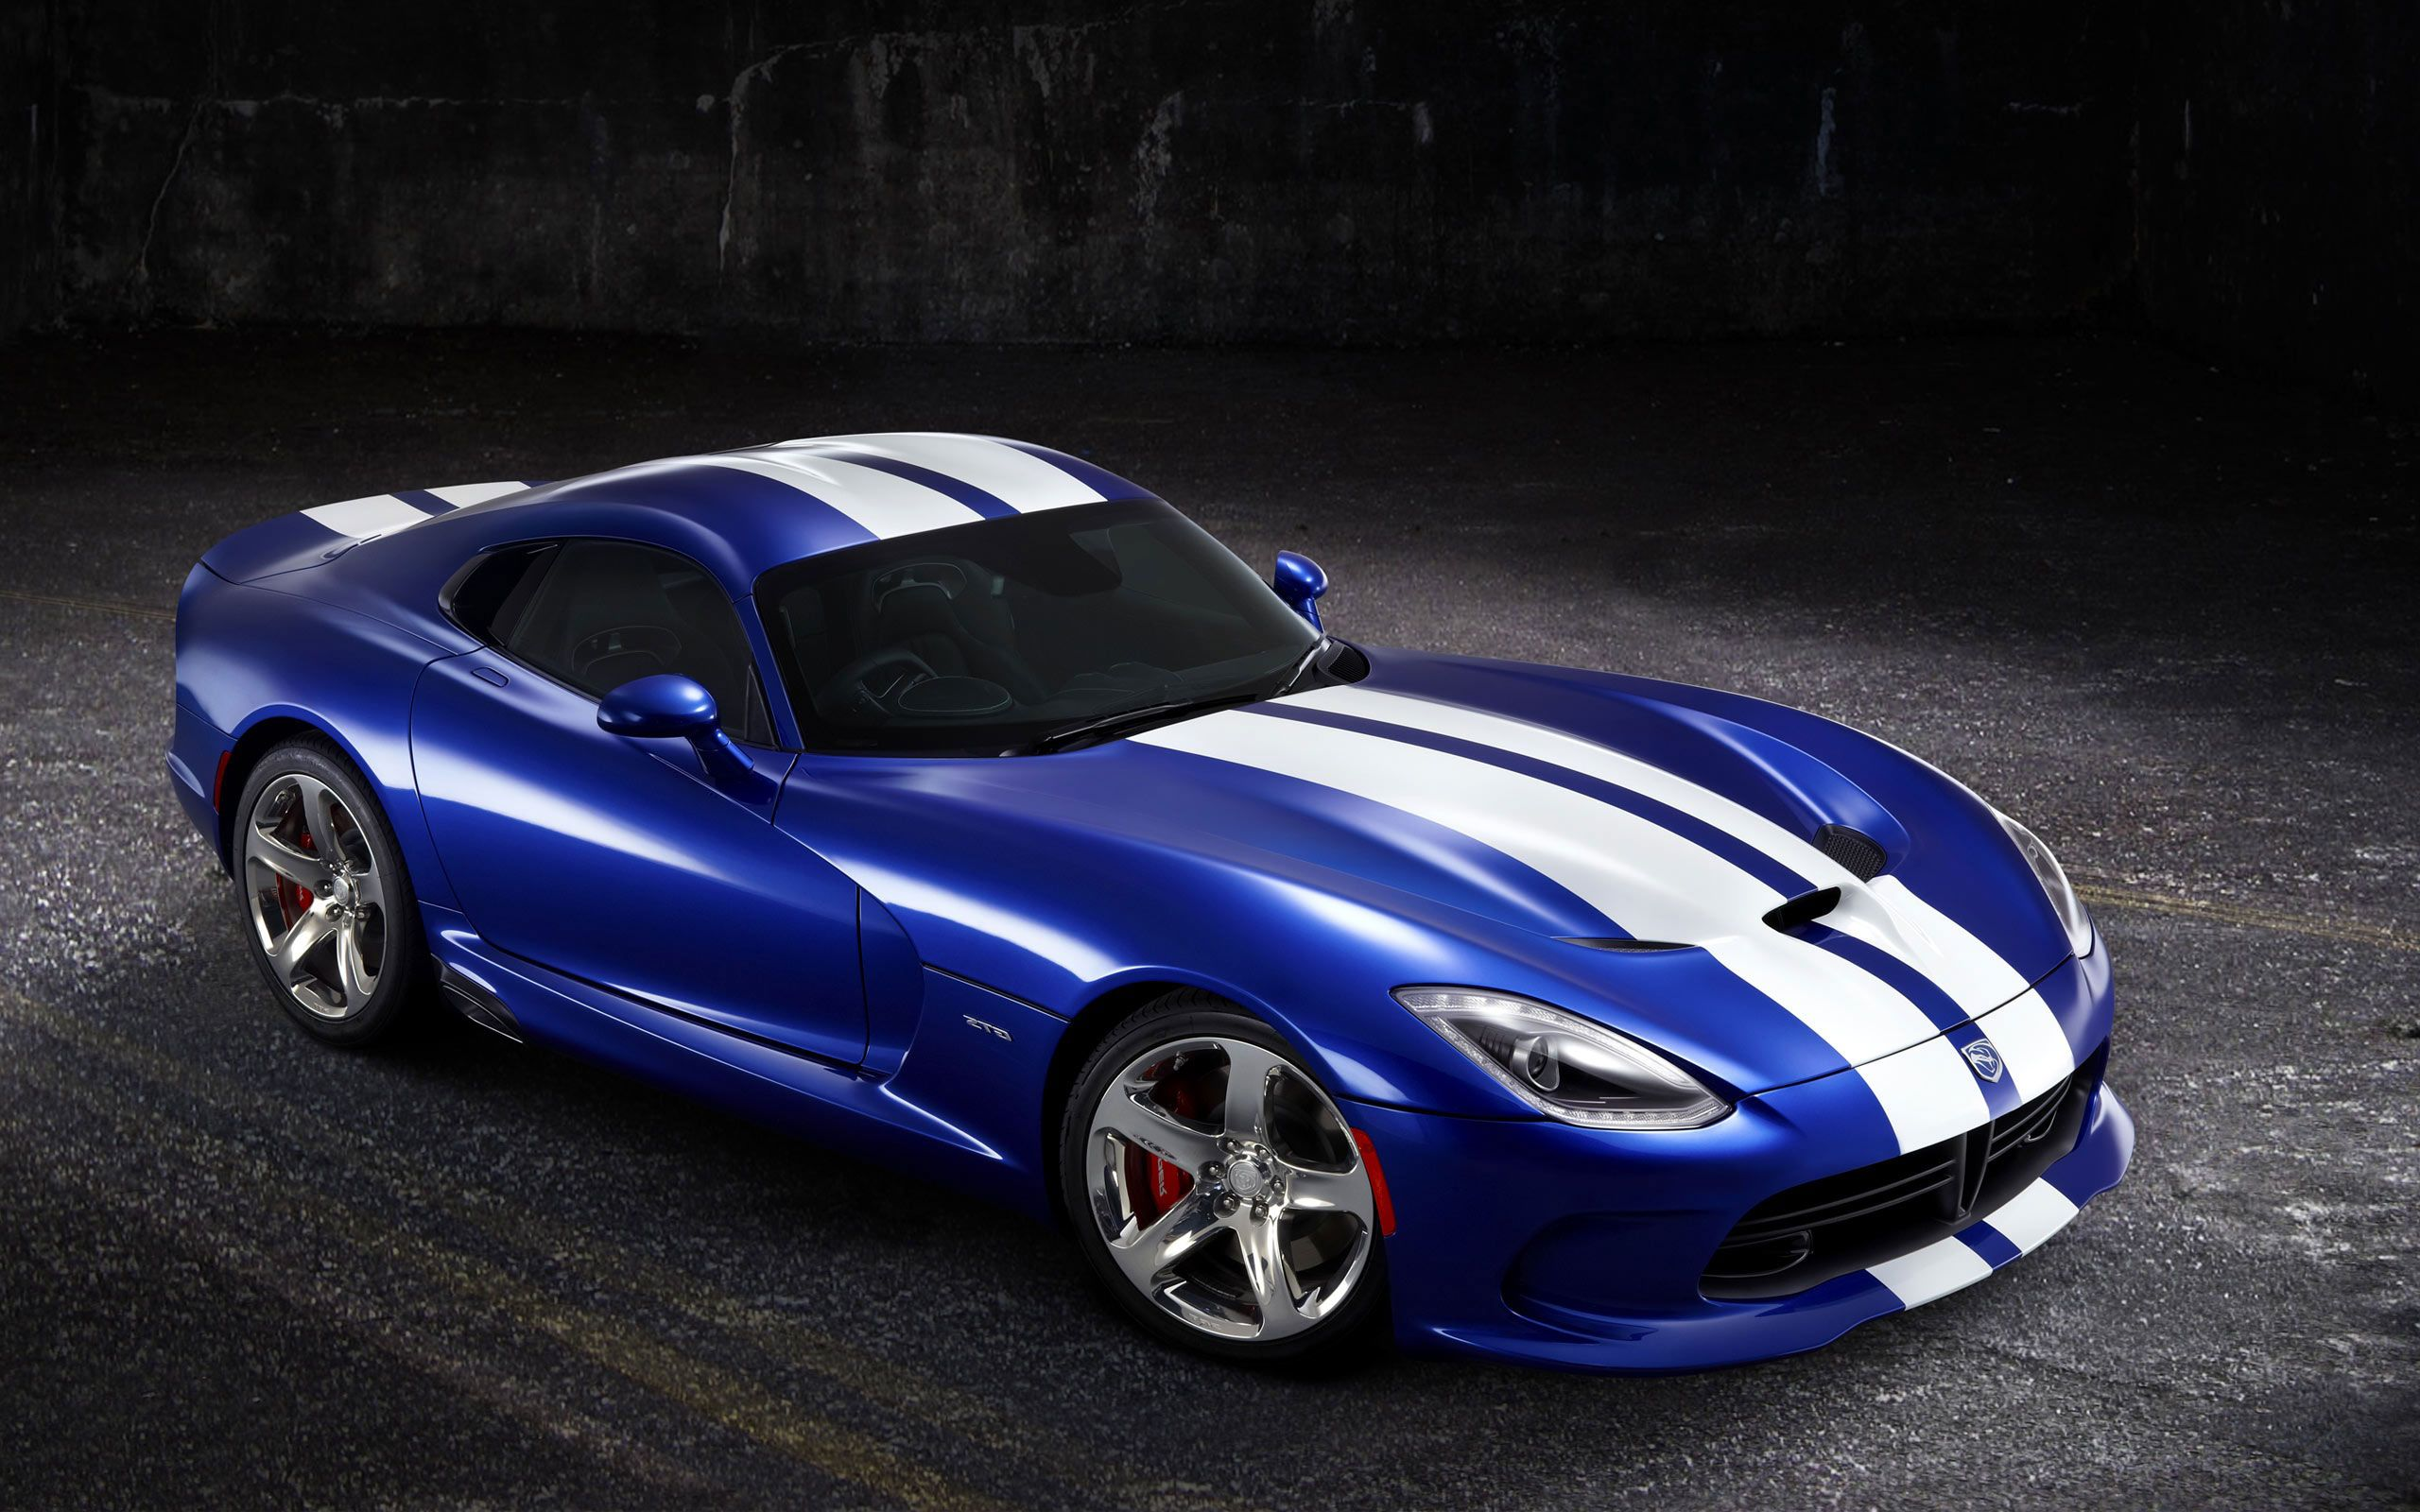 Dodge Viper Gt 2015 Wallpapers Hd   52DazheW Gallery 2560x1600